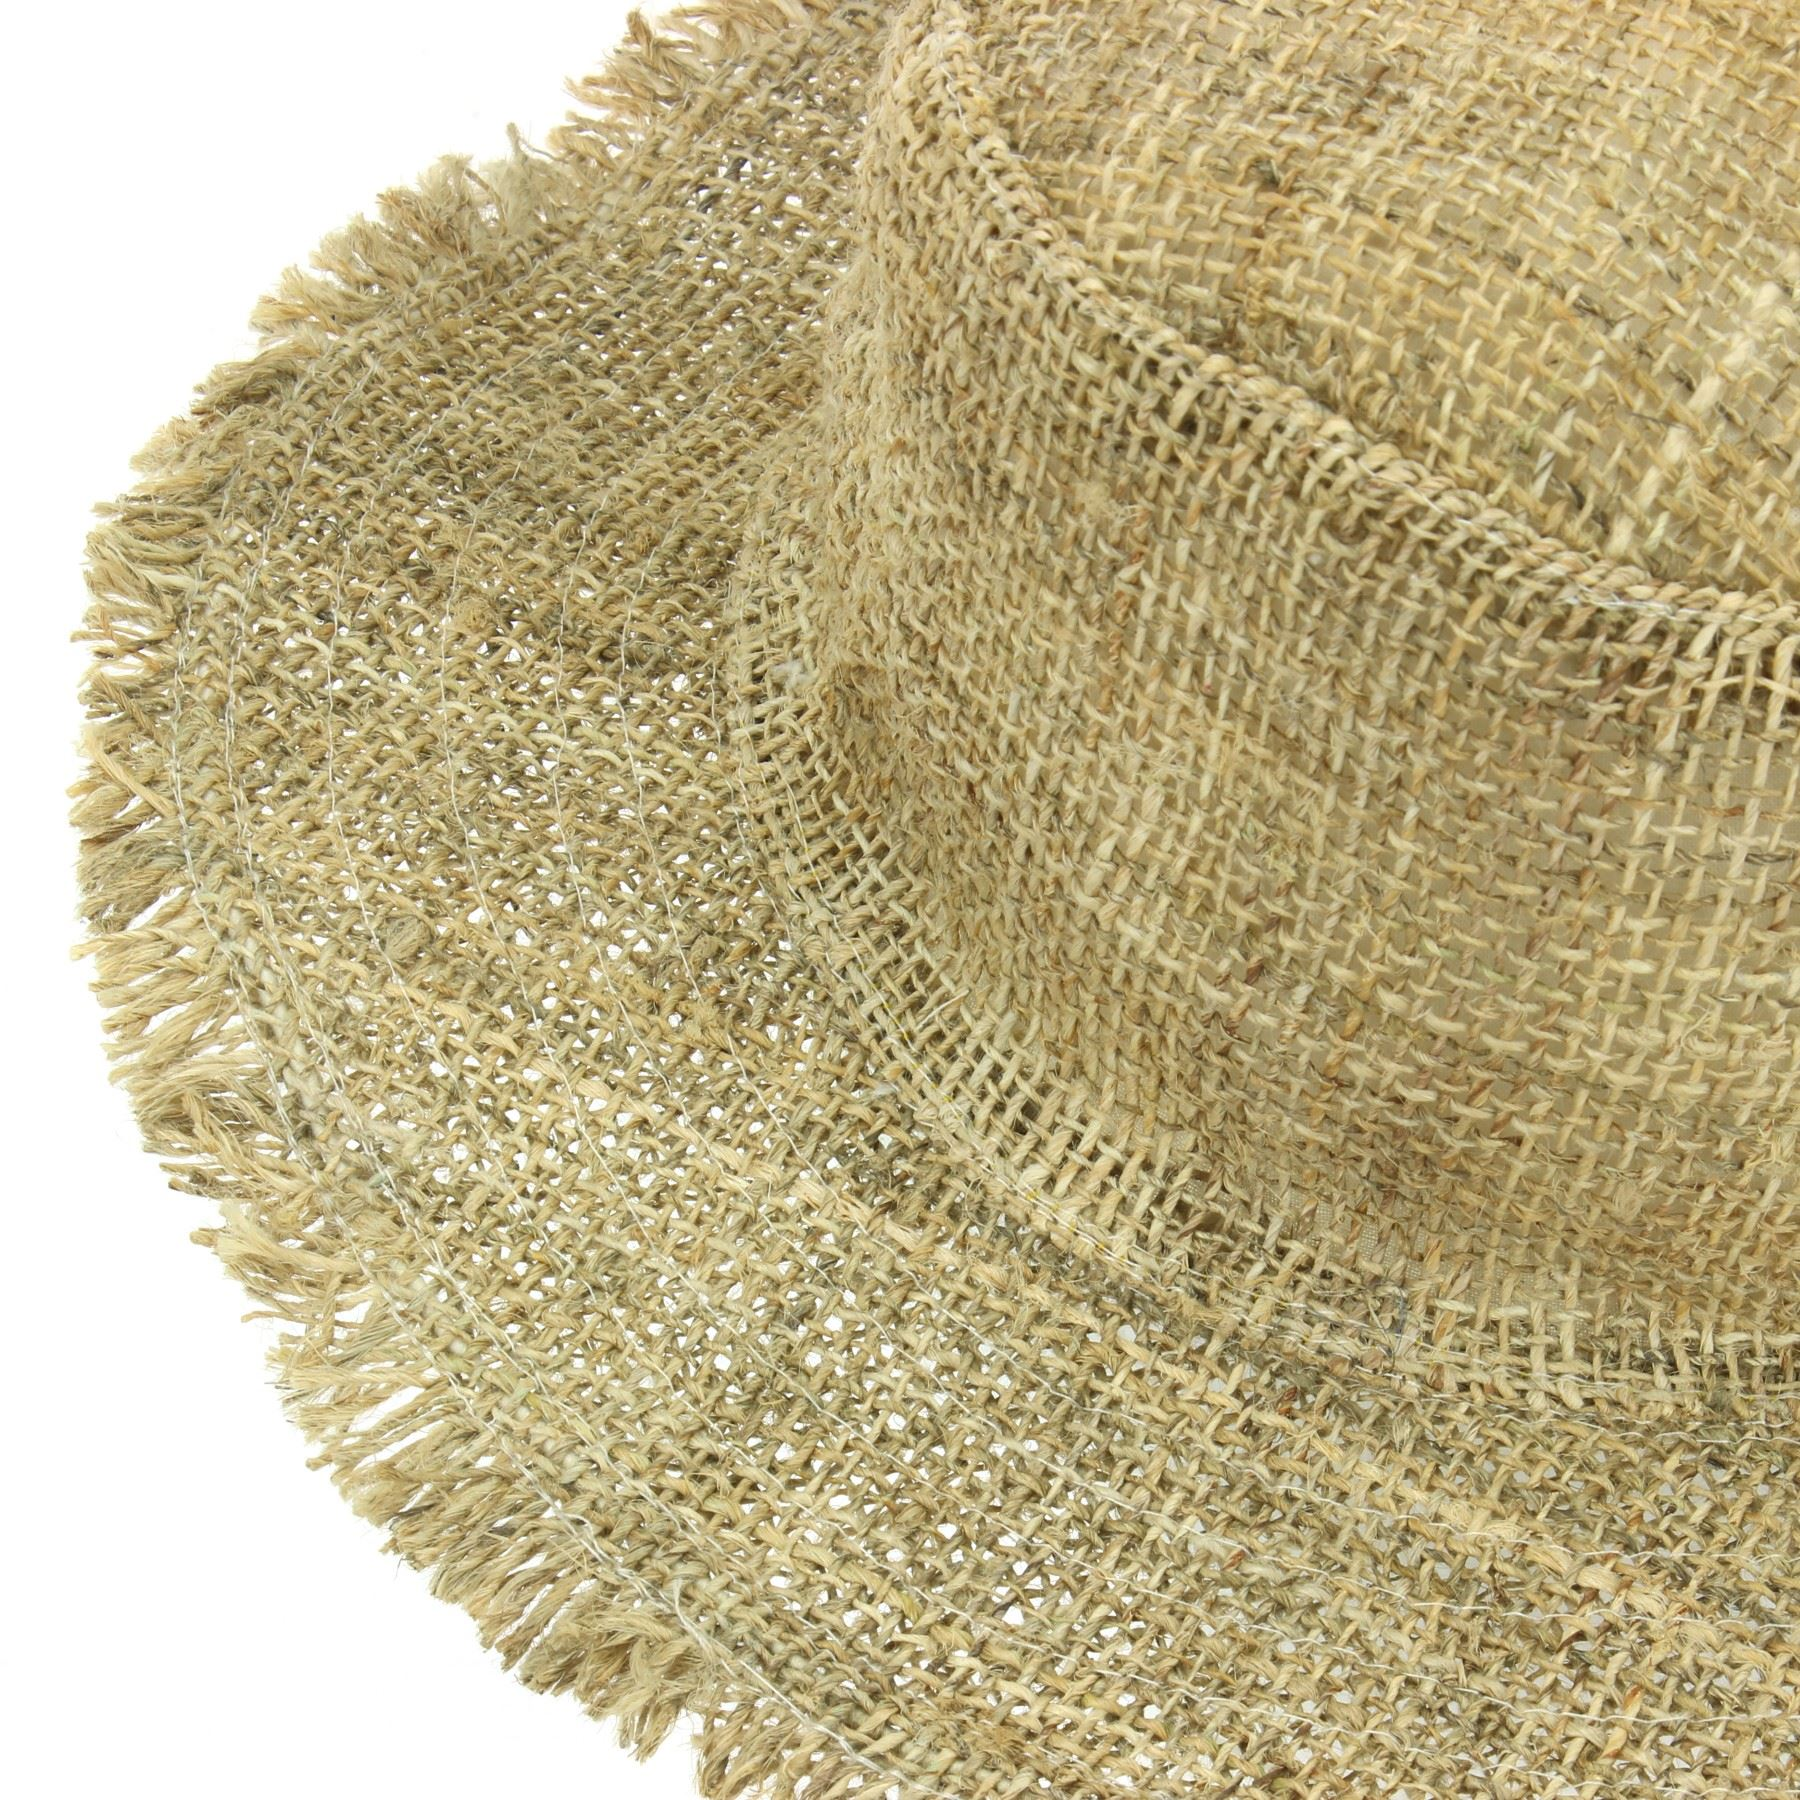 3f67afc555d183 Sun Hat Hemp Summer LoudElephant Frayed Brim Beach Cap Boho Hippie ...